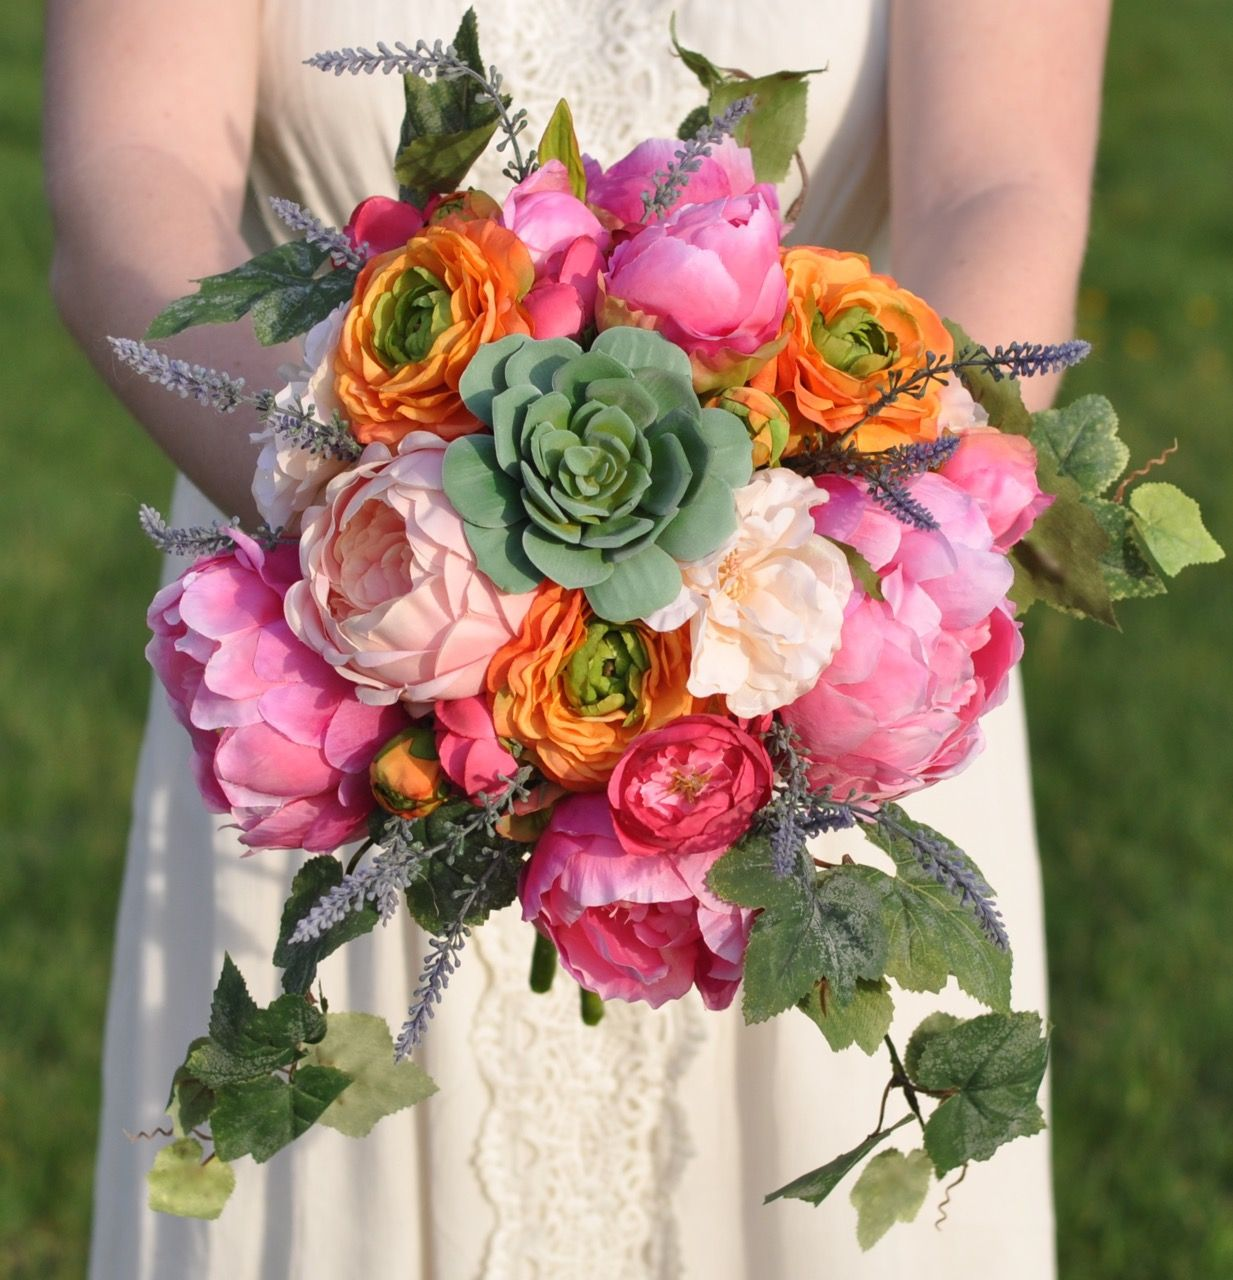 Bright summer silk bouquet with peonies, ranunculus, succulent, and lavender by Holly's Flower Shoppe on Etsy.